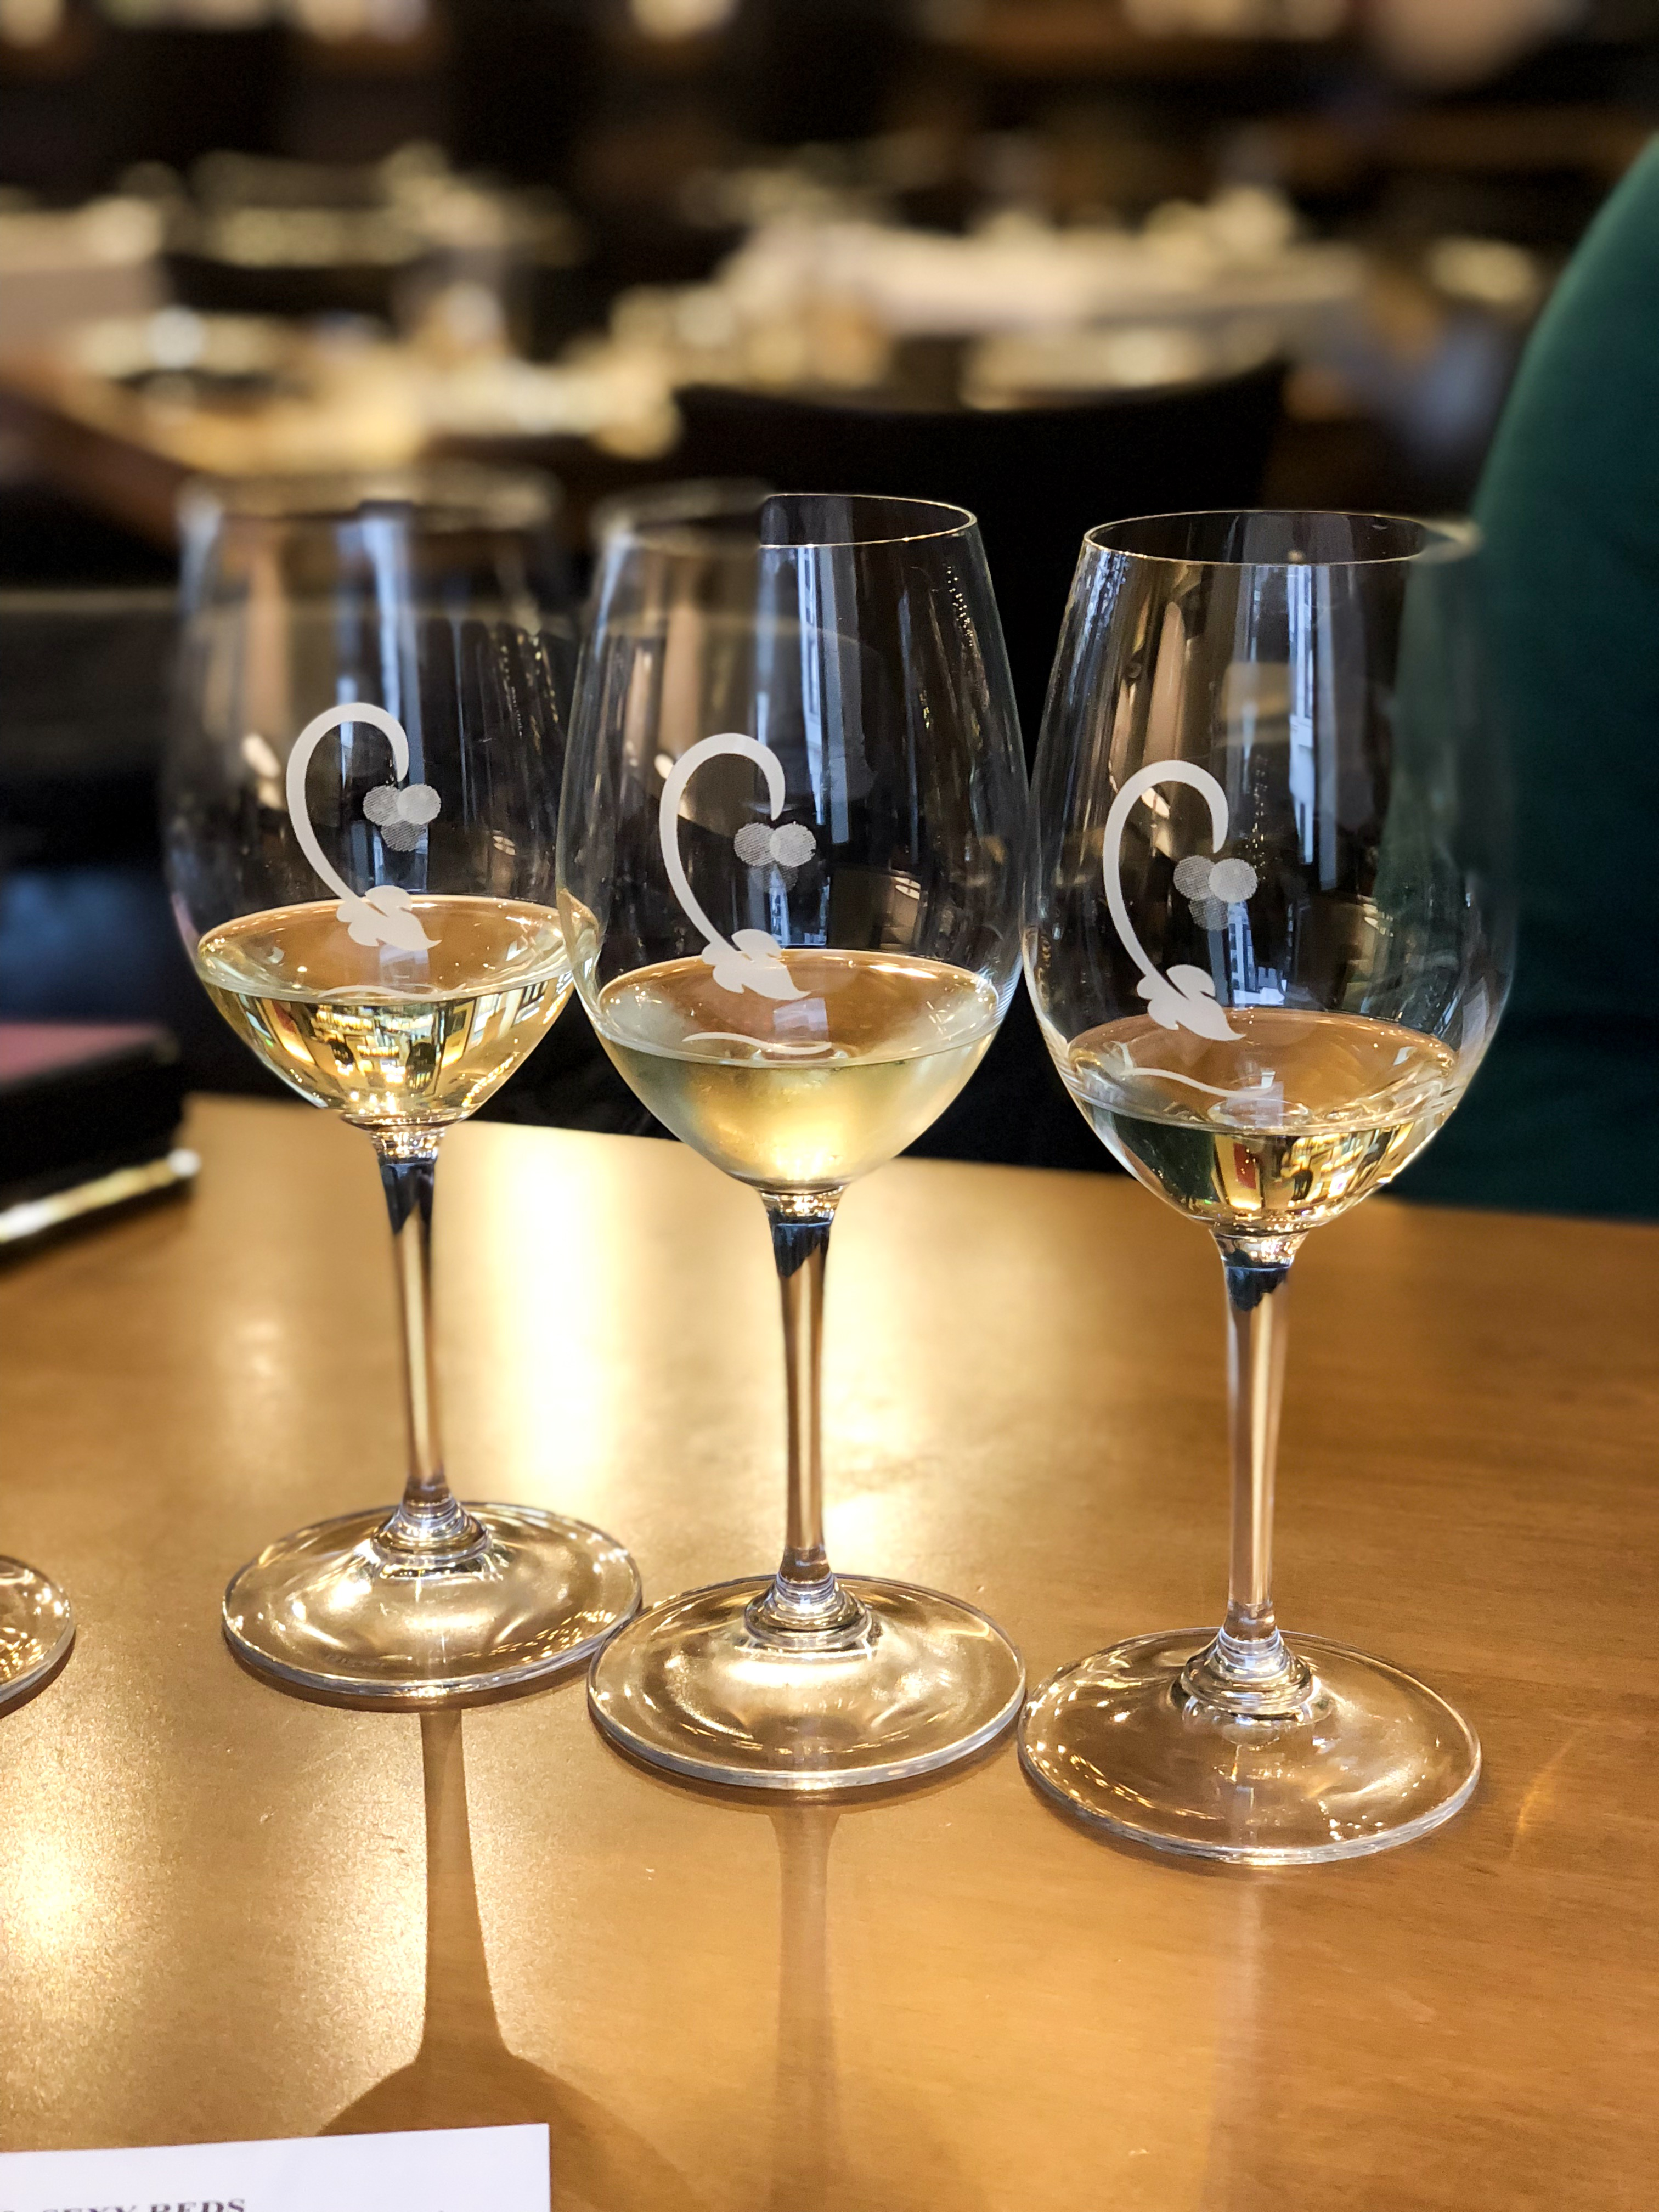 Three glasses of white wines that is part of a wine flight at Cru Food and Wine Bar